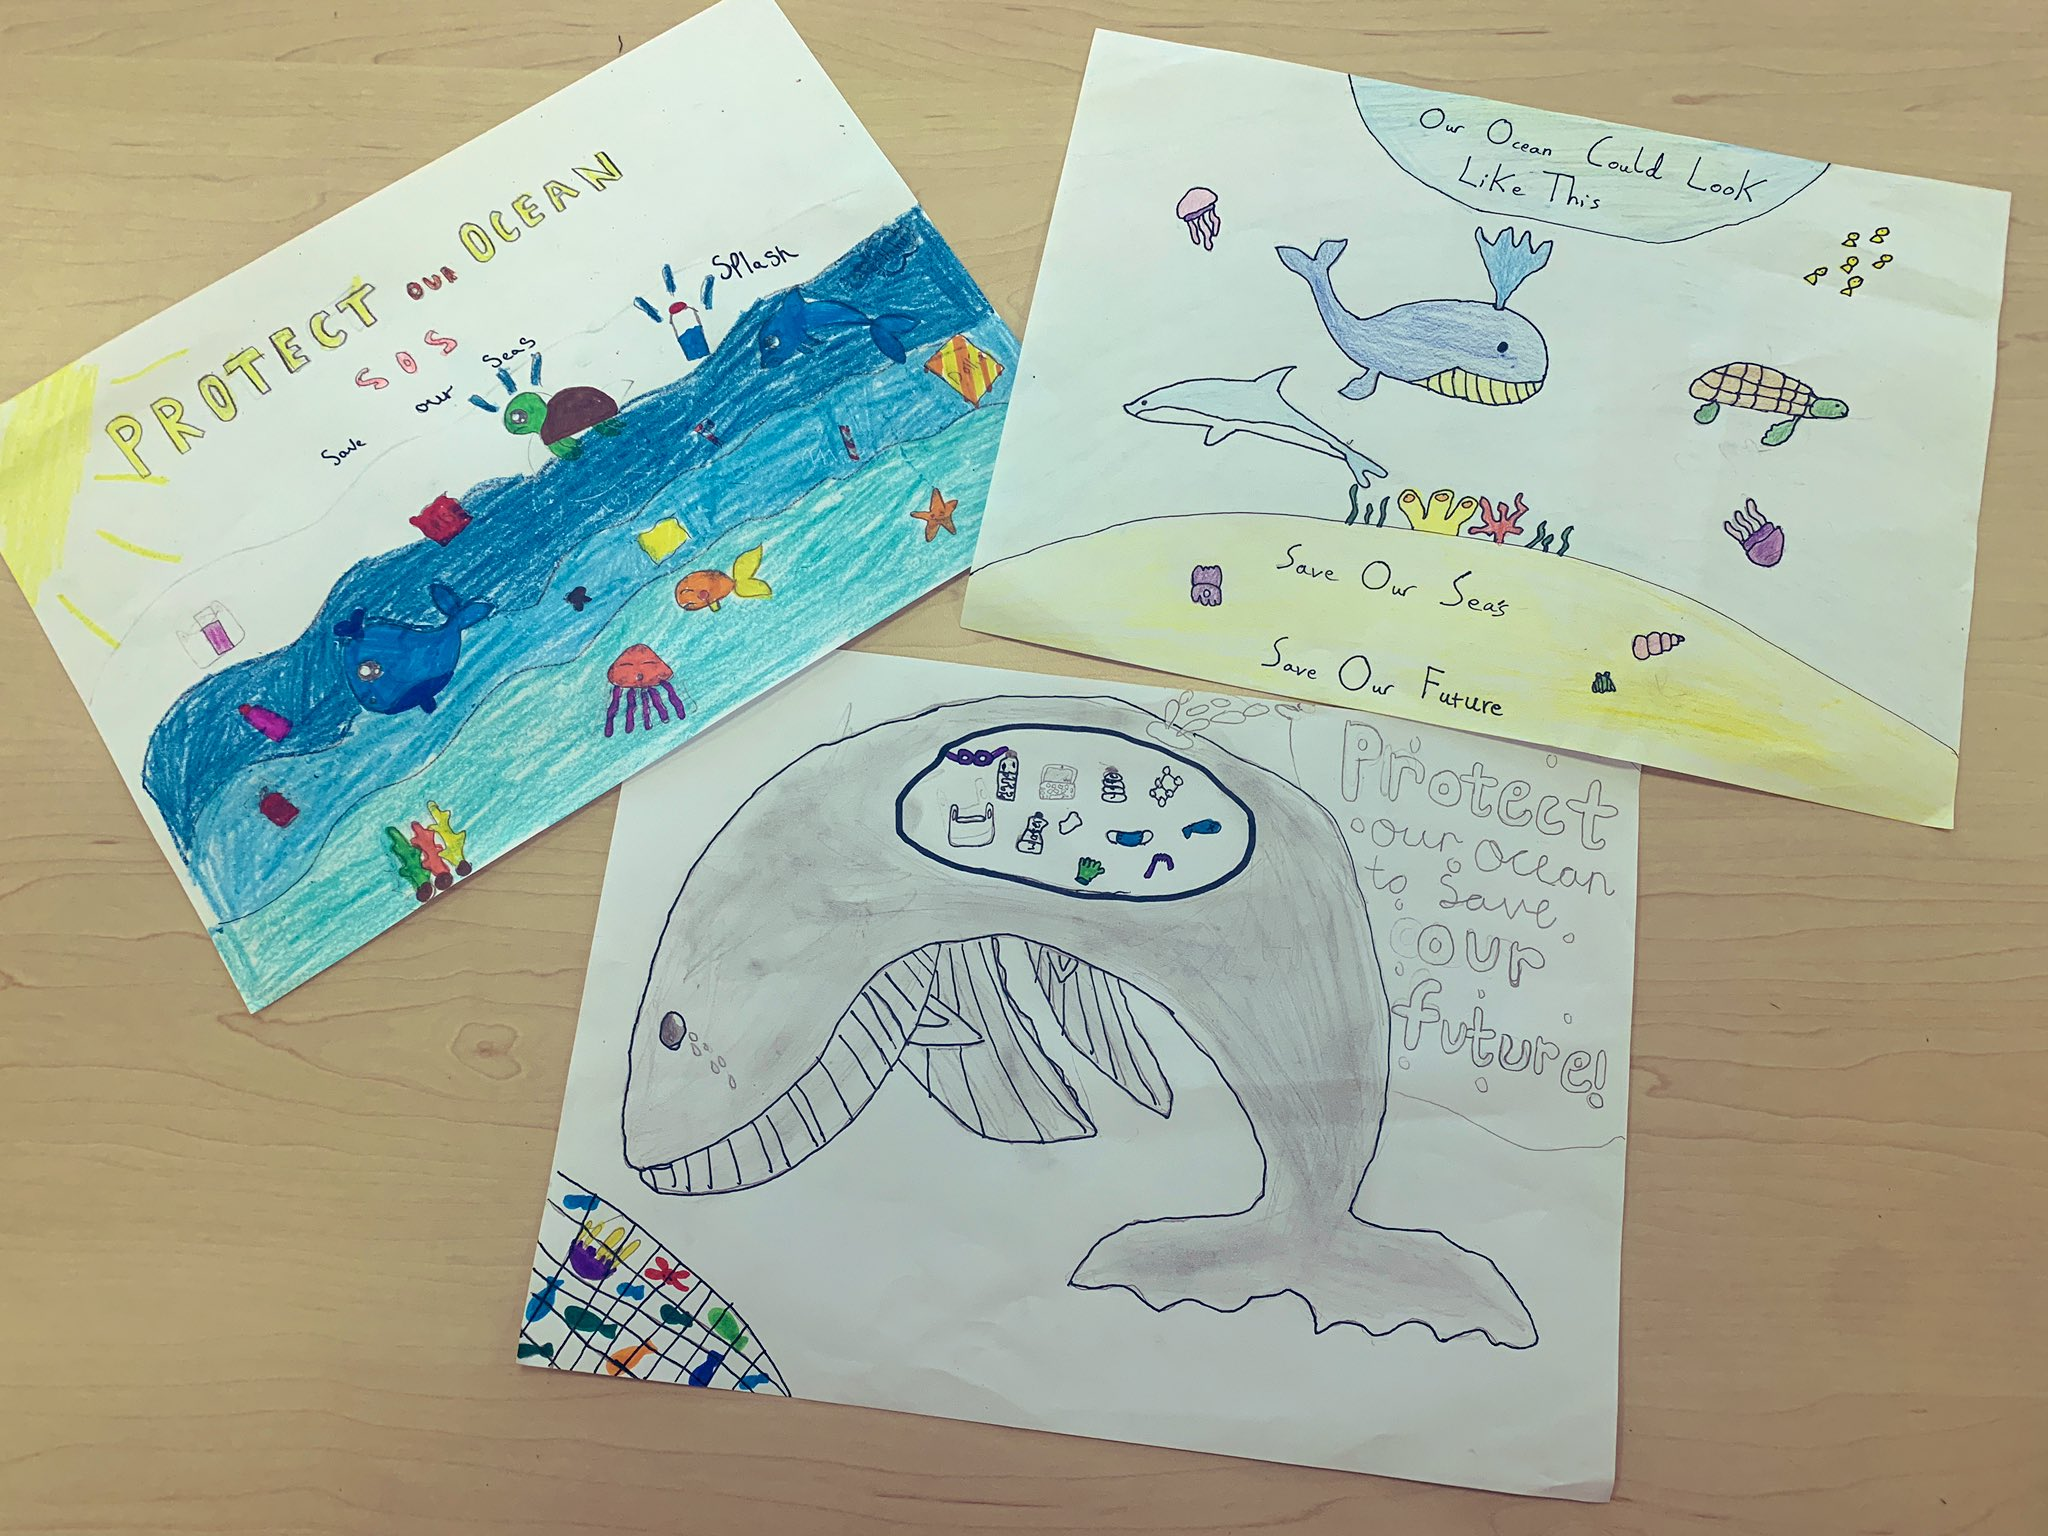 Selection of posters drawn by school children calling for better ocean protection